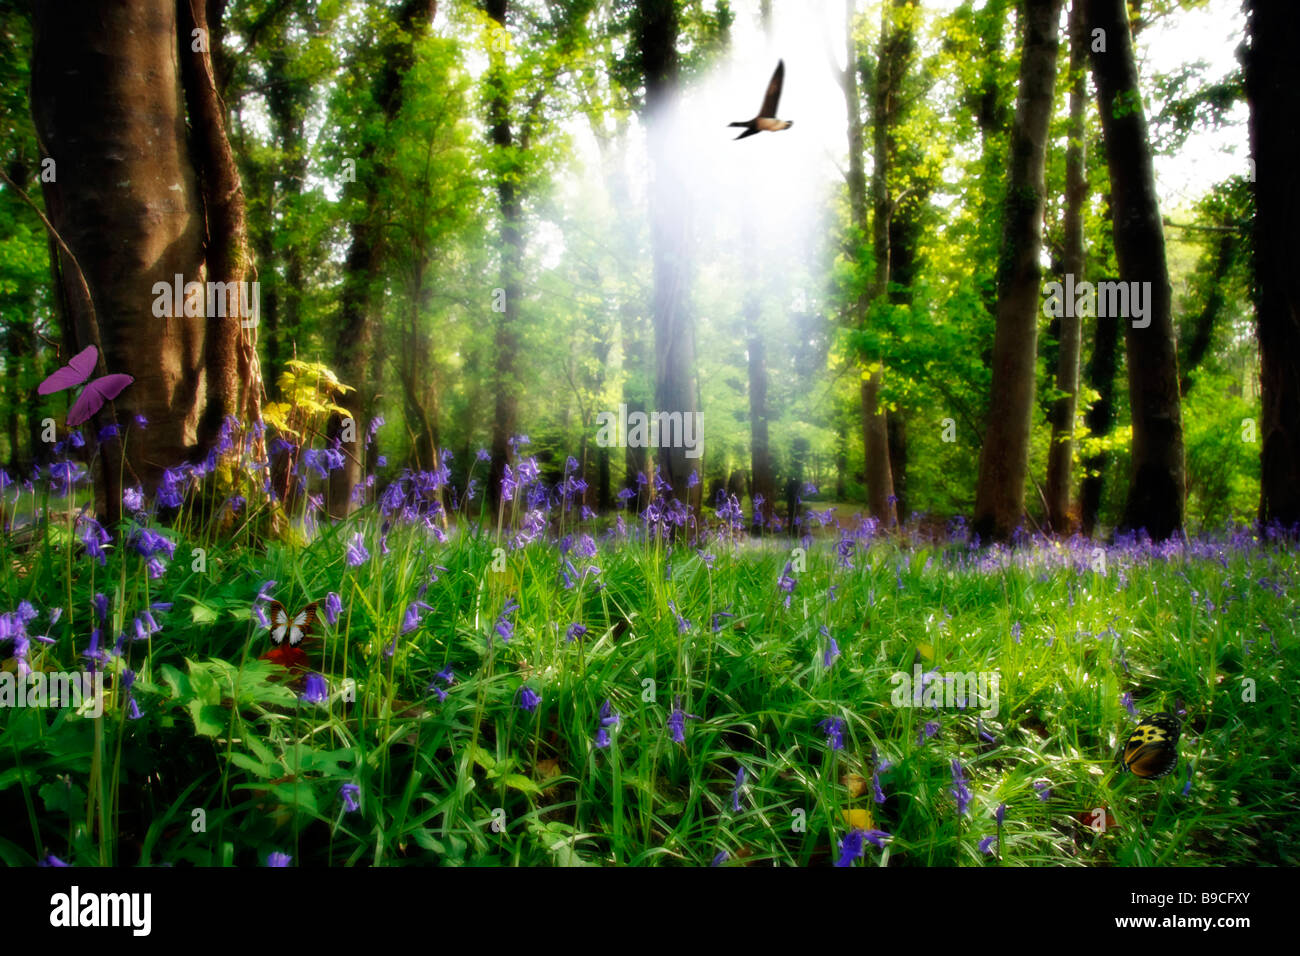 a wood full of bluebells - Stock Image